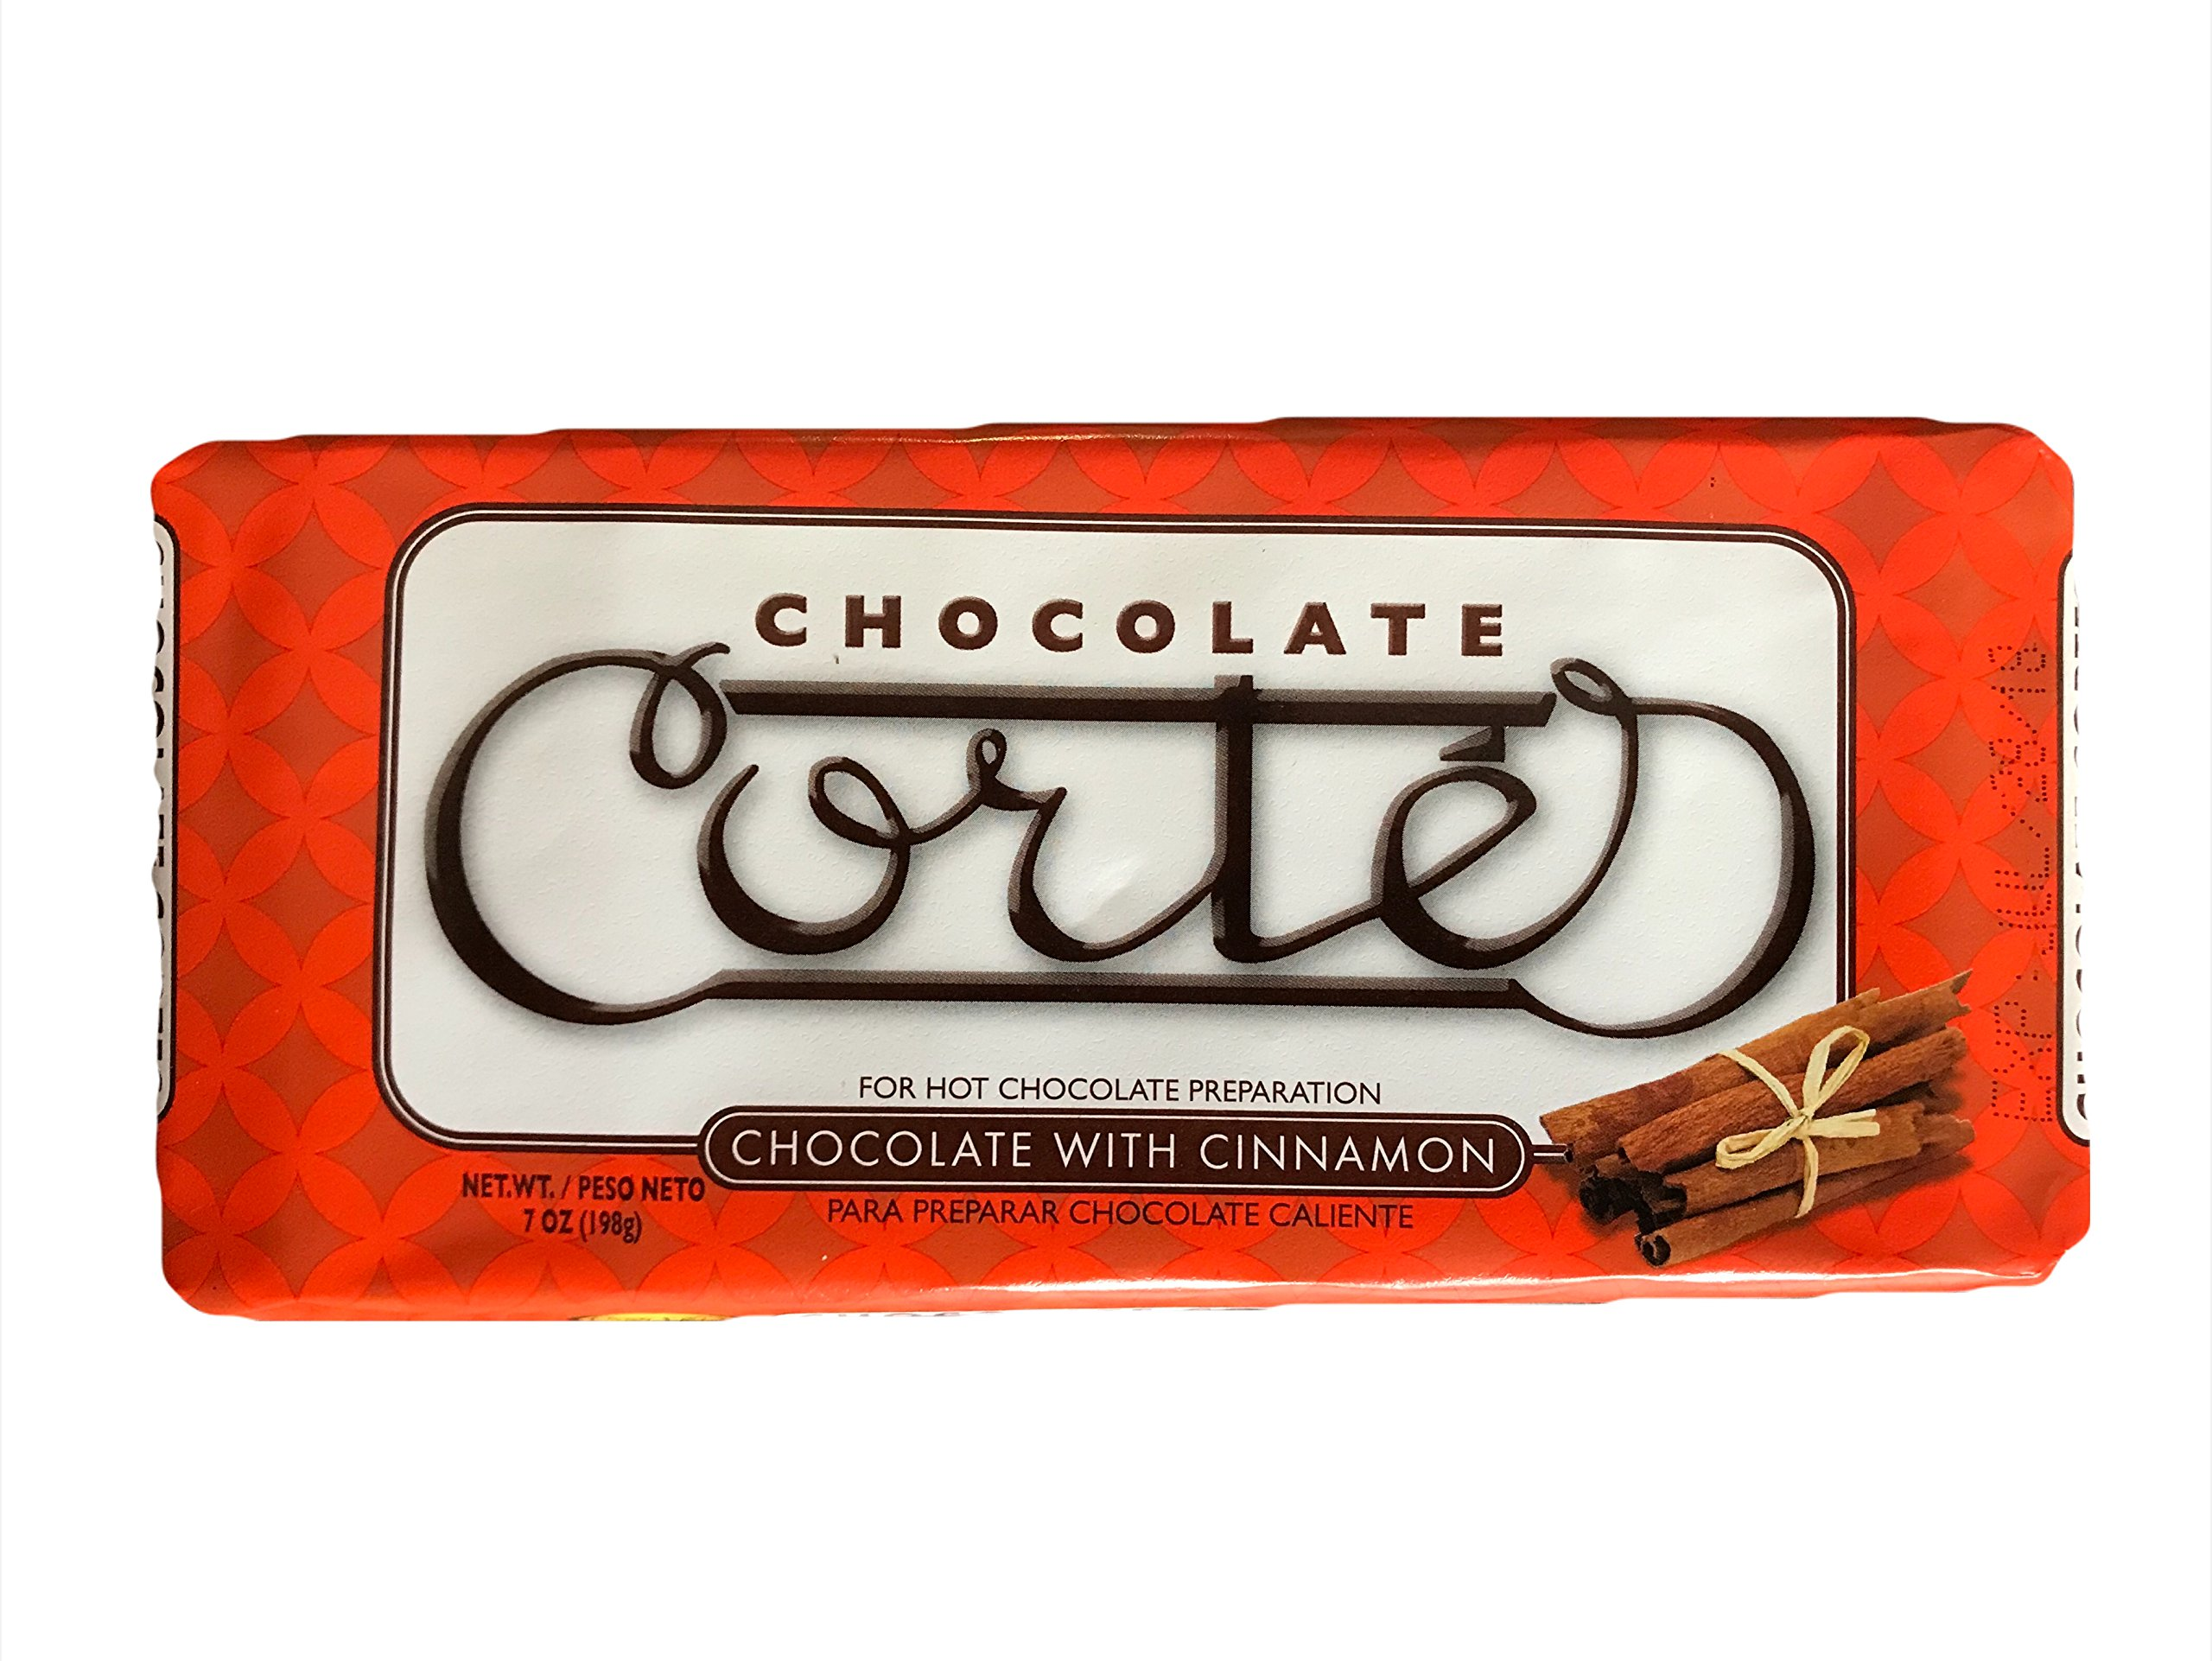 Cortes Chocolate with Cinnamon for Hot Chocolate Preparation - 7 oz Bar (Count of 3